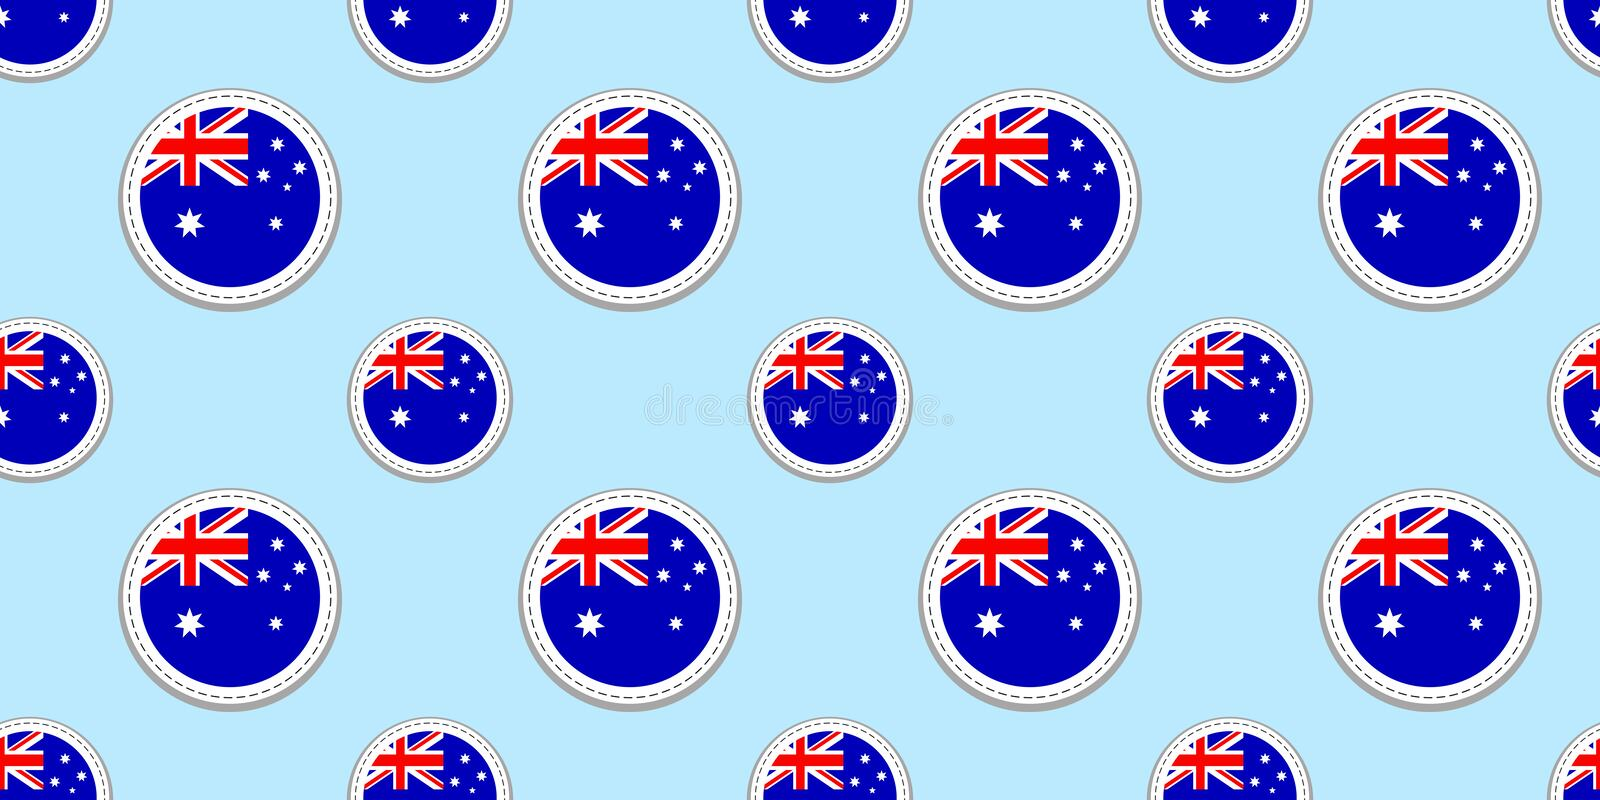 Australia round flag seamless pattern. Australian background. Vector circle icons. Geometric symbols. Texture for sports pages, co vector illustration